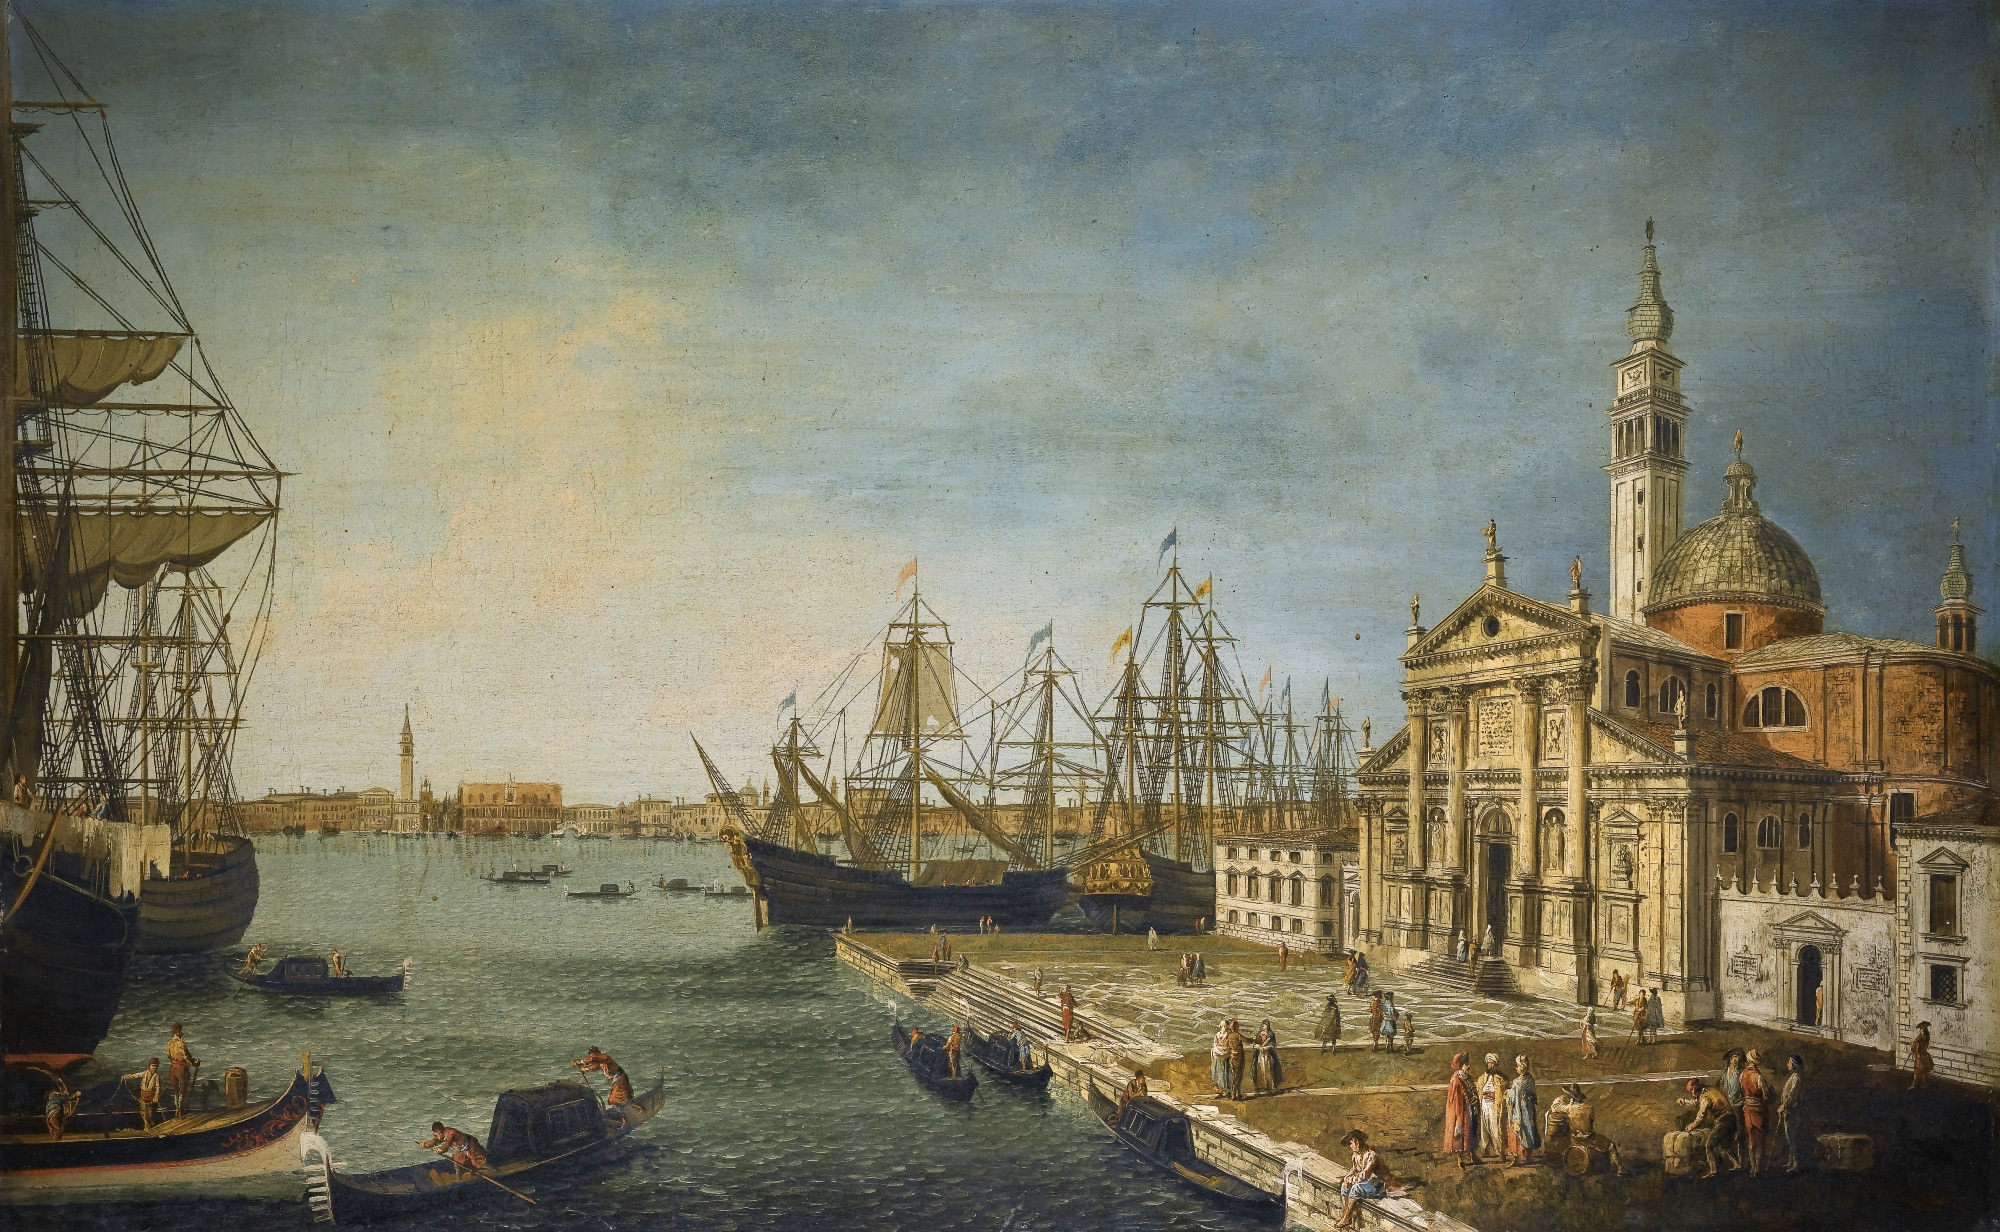 View_of_the_Bacino_Di_San_Marco_from_the_Church_and_Island_of_San_Giorgio_Maggiore_by_Michele_Marieschi